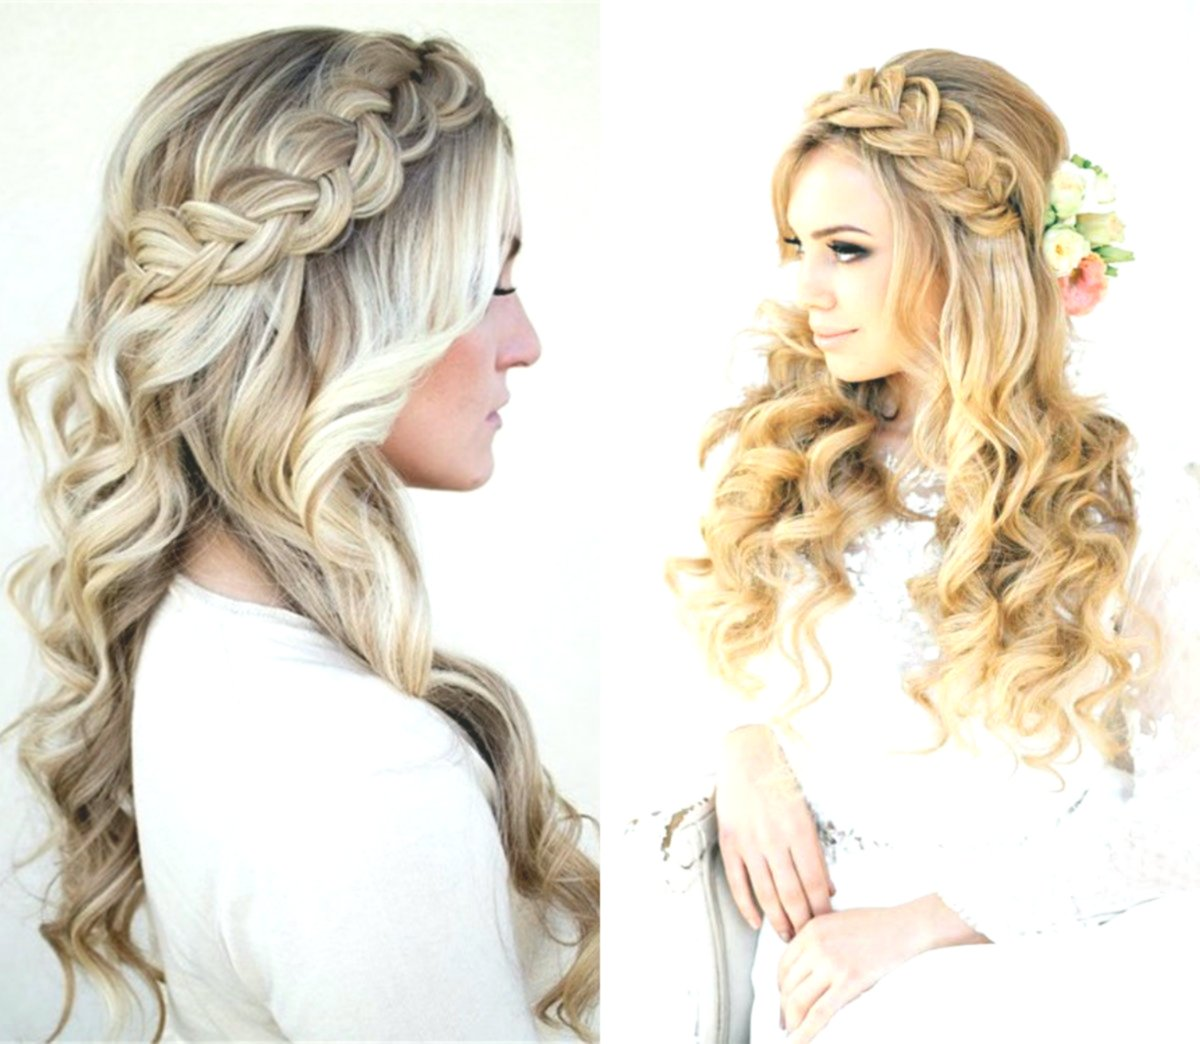 lovely half-open braided hairstyles architecture-fascinating Half-open braided hairstyles concepts